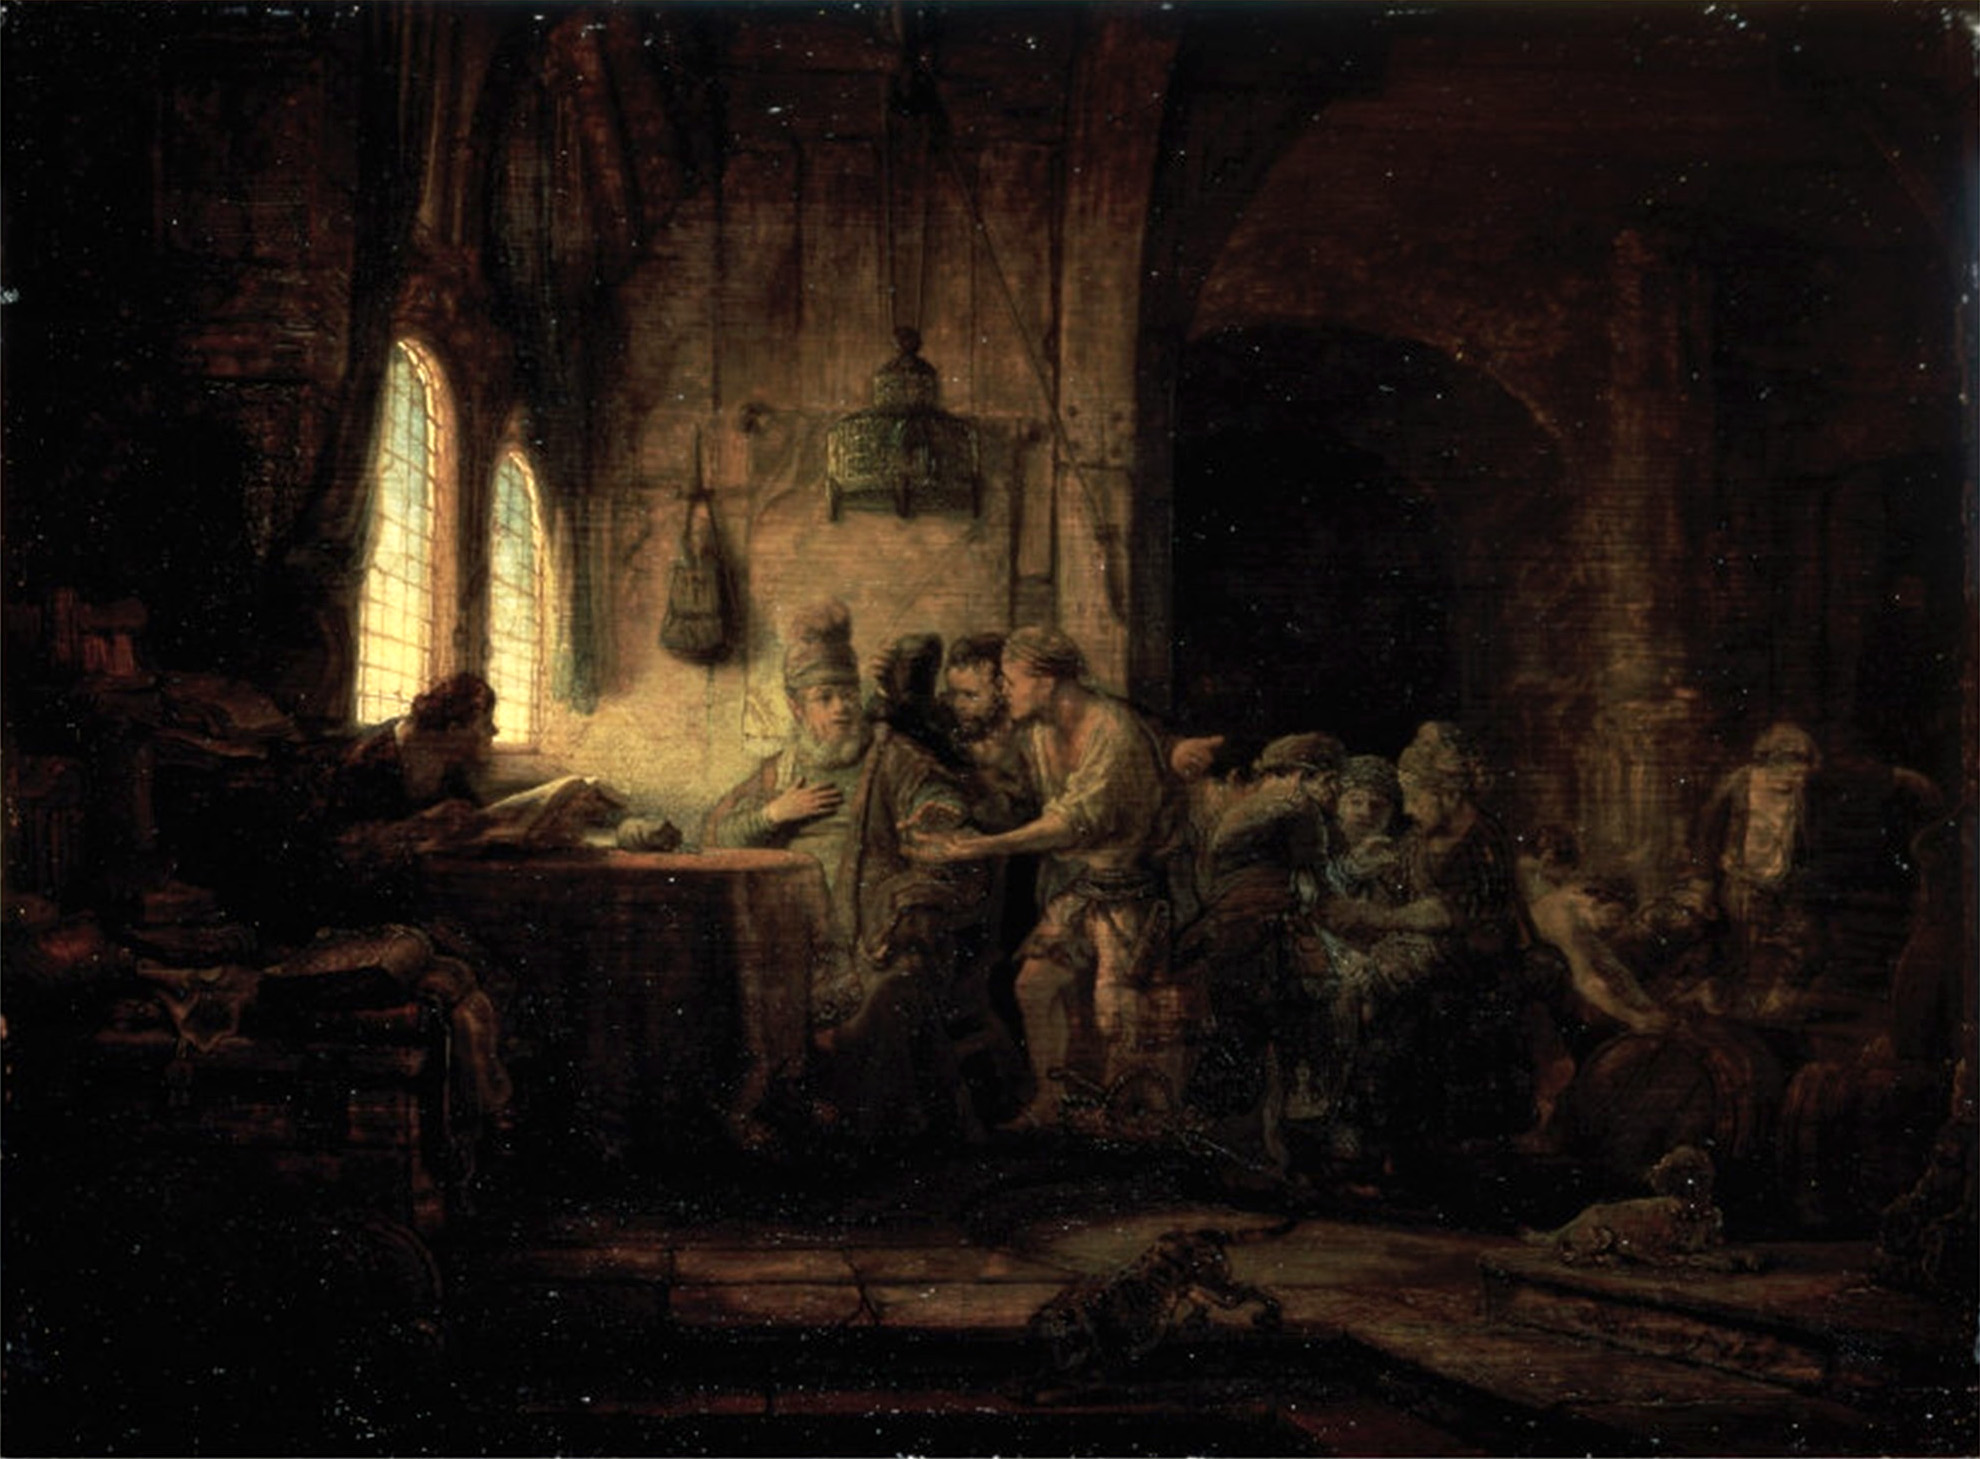 https://upload.wikimedia.org/wikipedia/commons/4/42/Rembrandt_-_Parable_of_the_Laborers_in_the_Vineyard.jpg